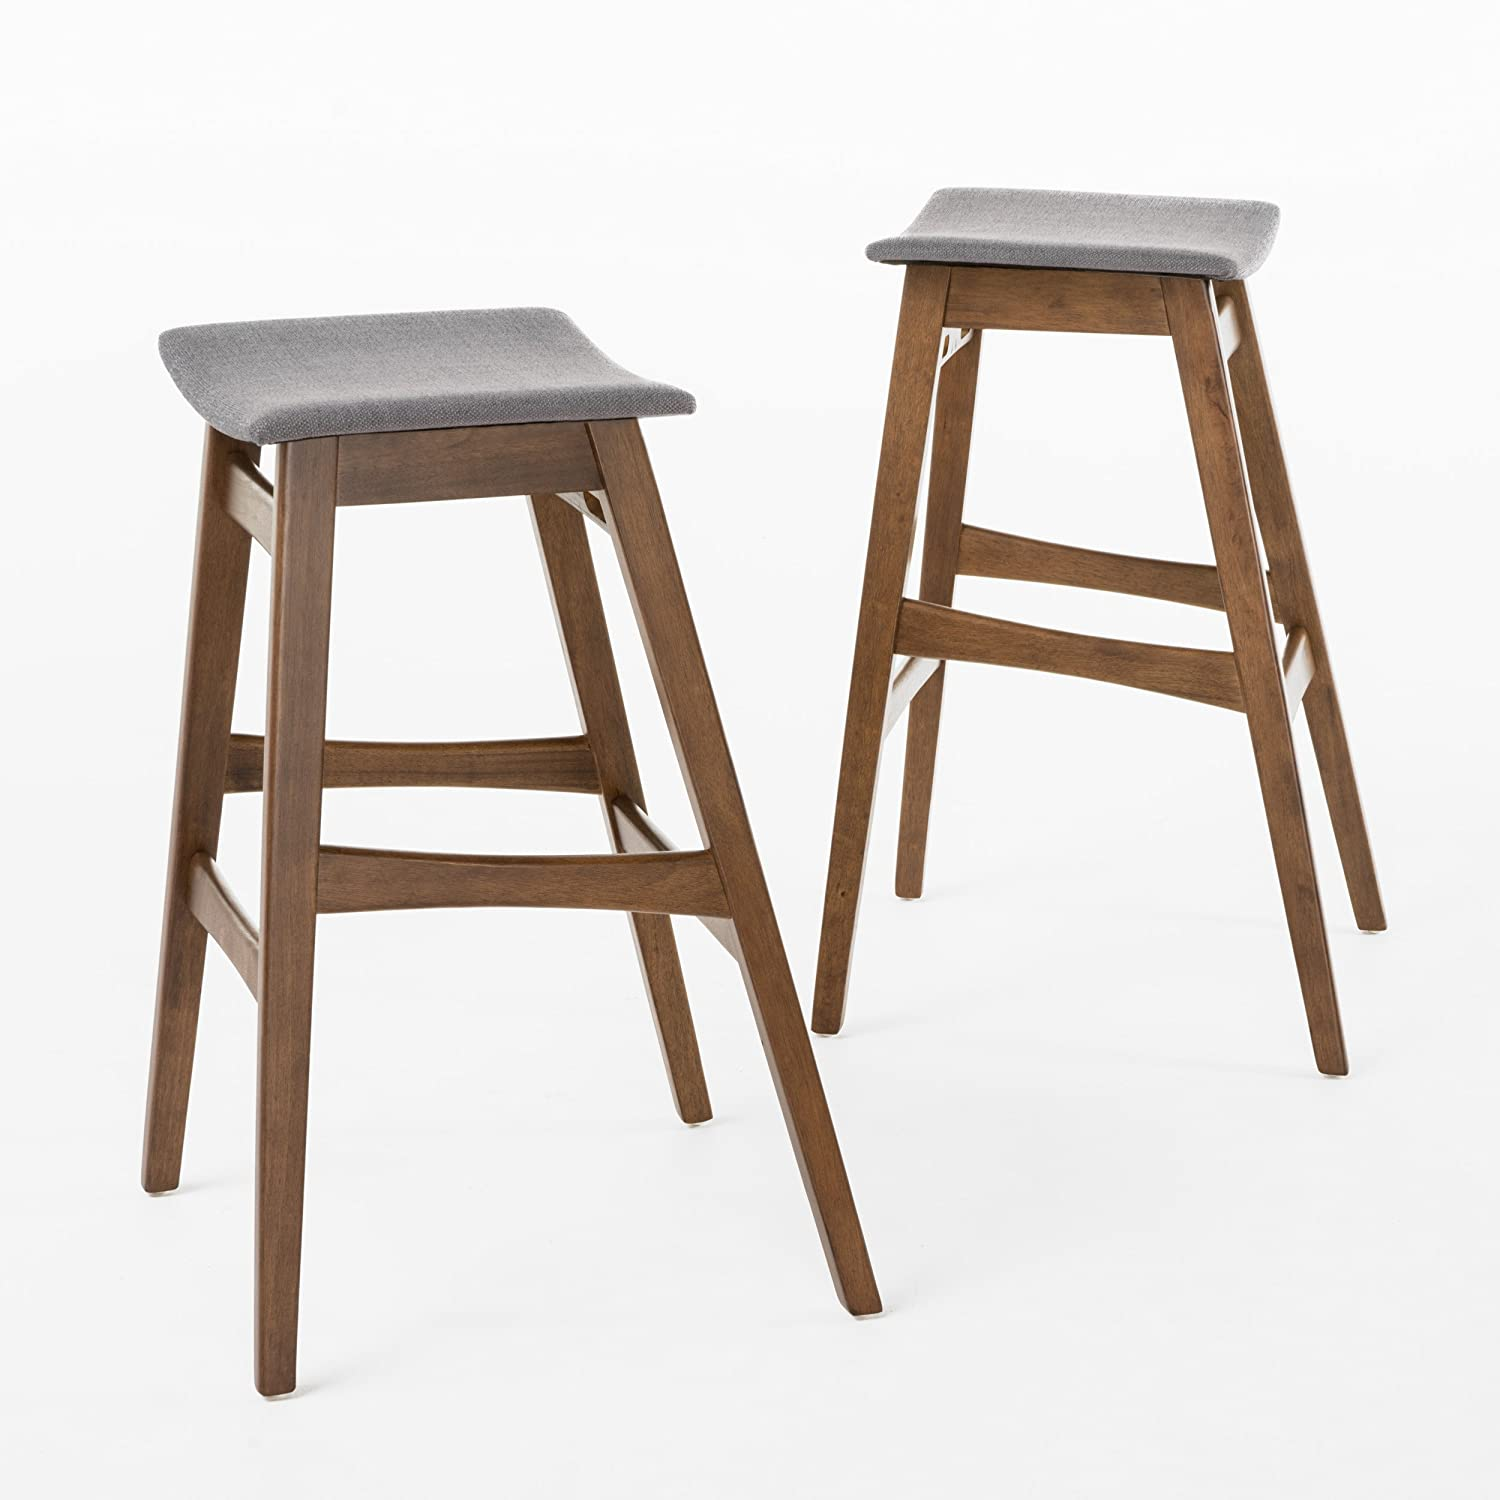 GDF Studio Oster Mid-Century Oxford Grey Fabric Walnut Finish Bar Stool Set of 2